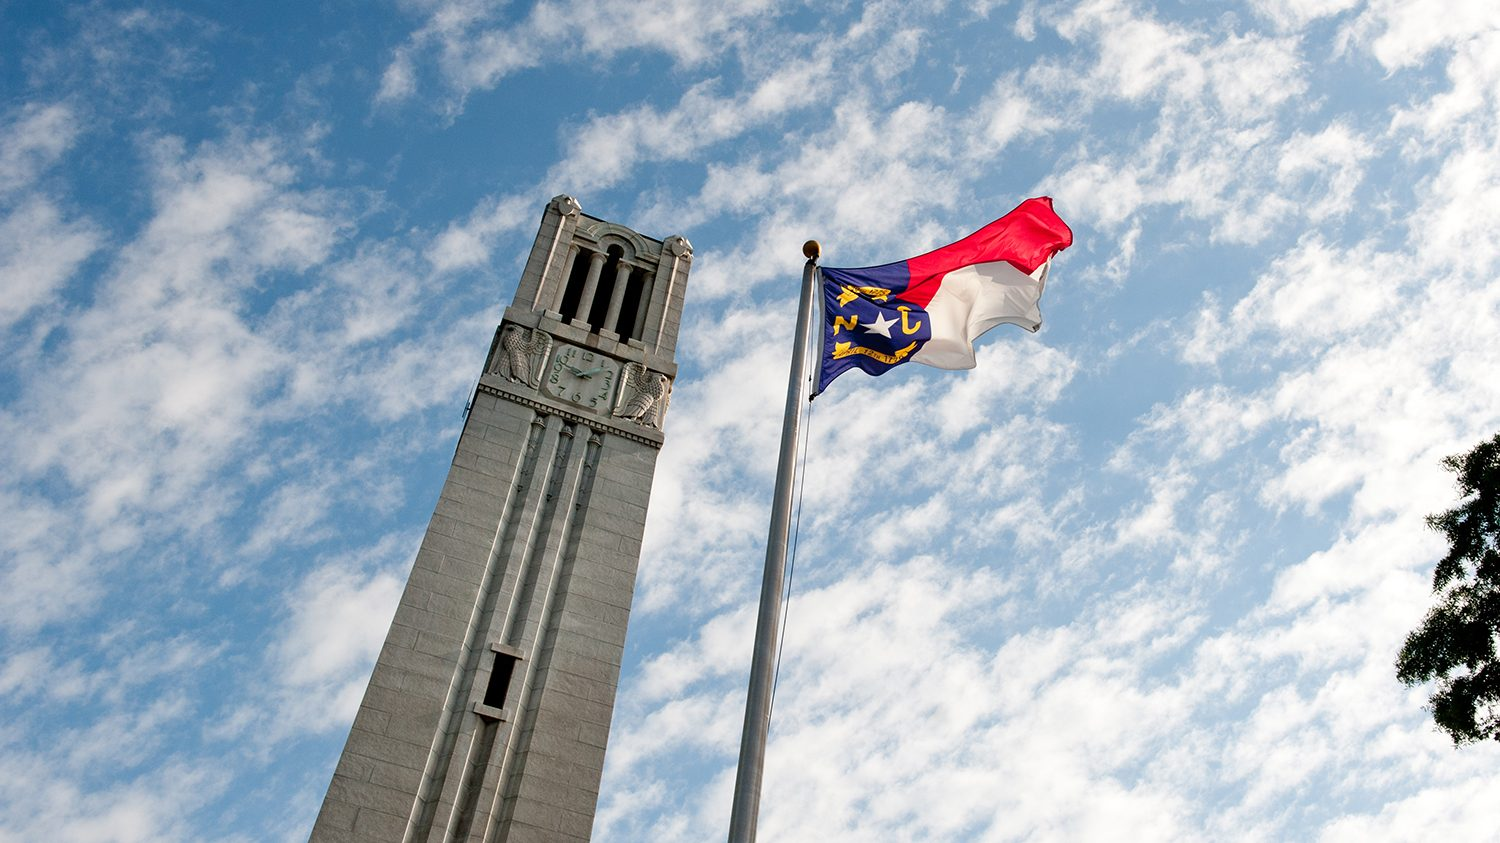 Belltower and North Carolina flag.